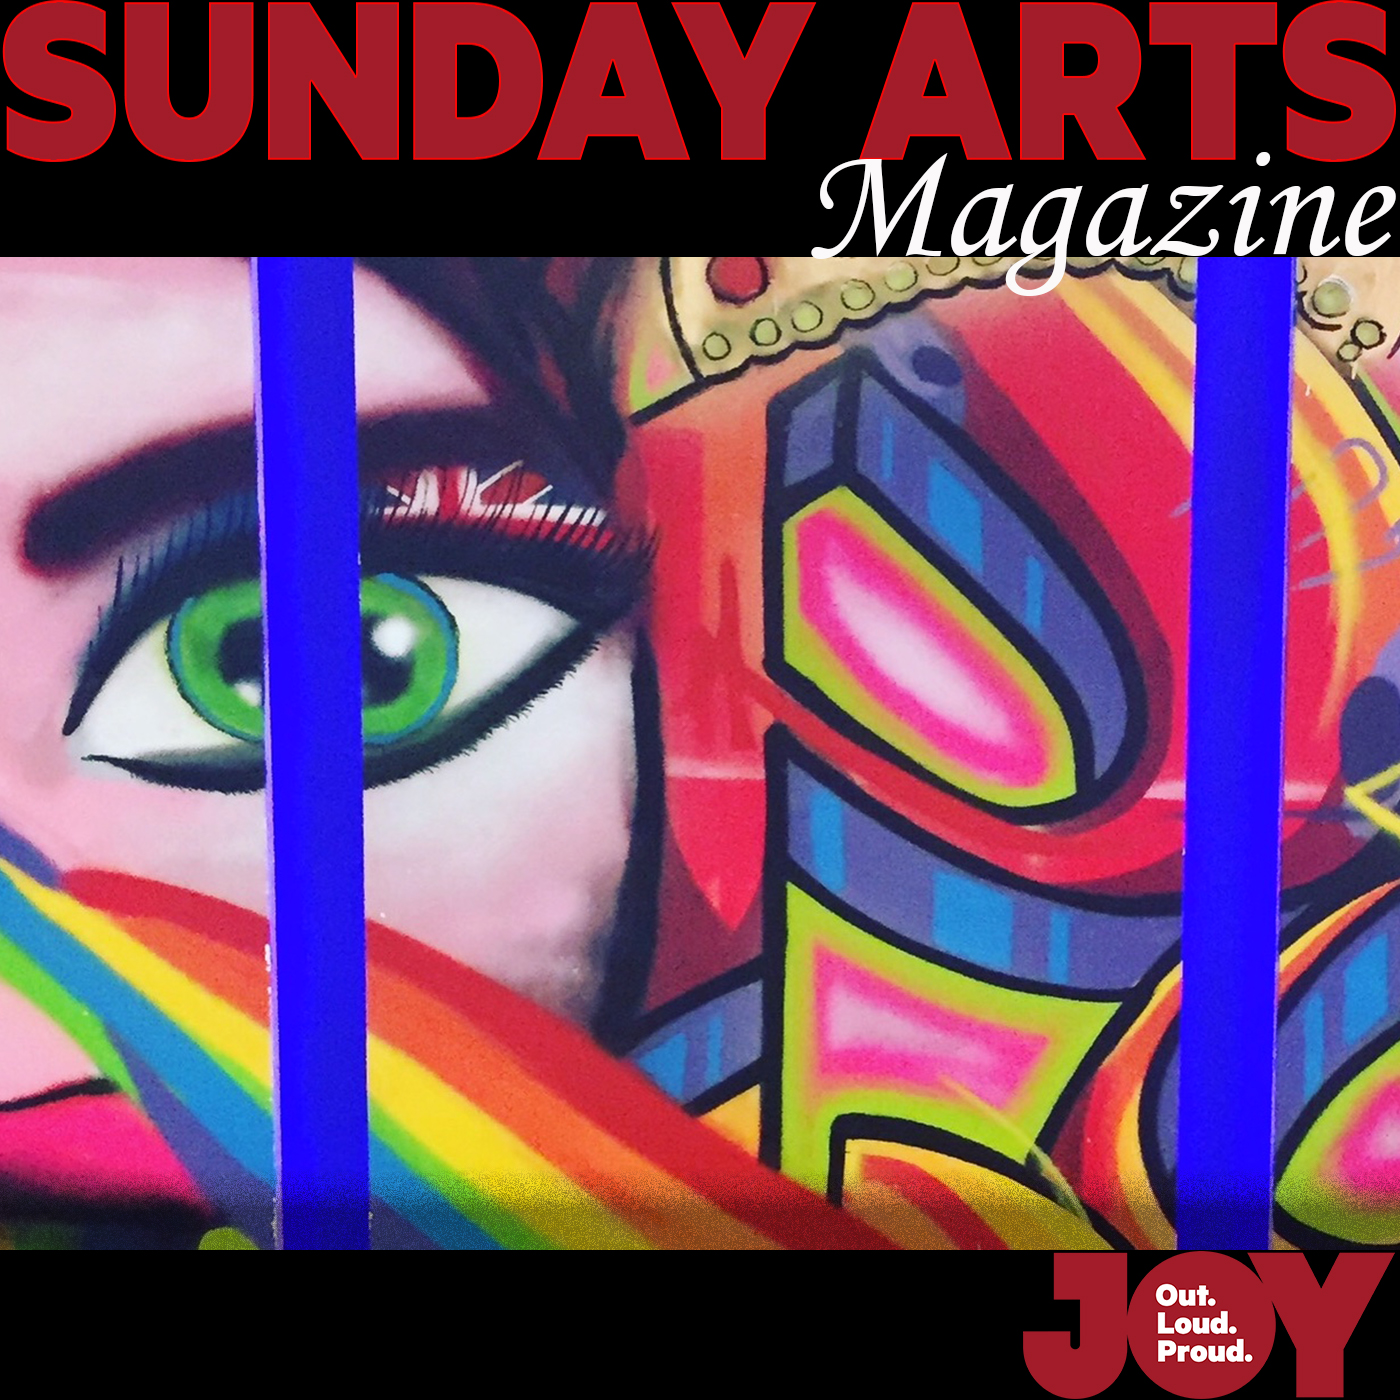 Sunday Arts Magazine